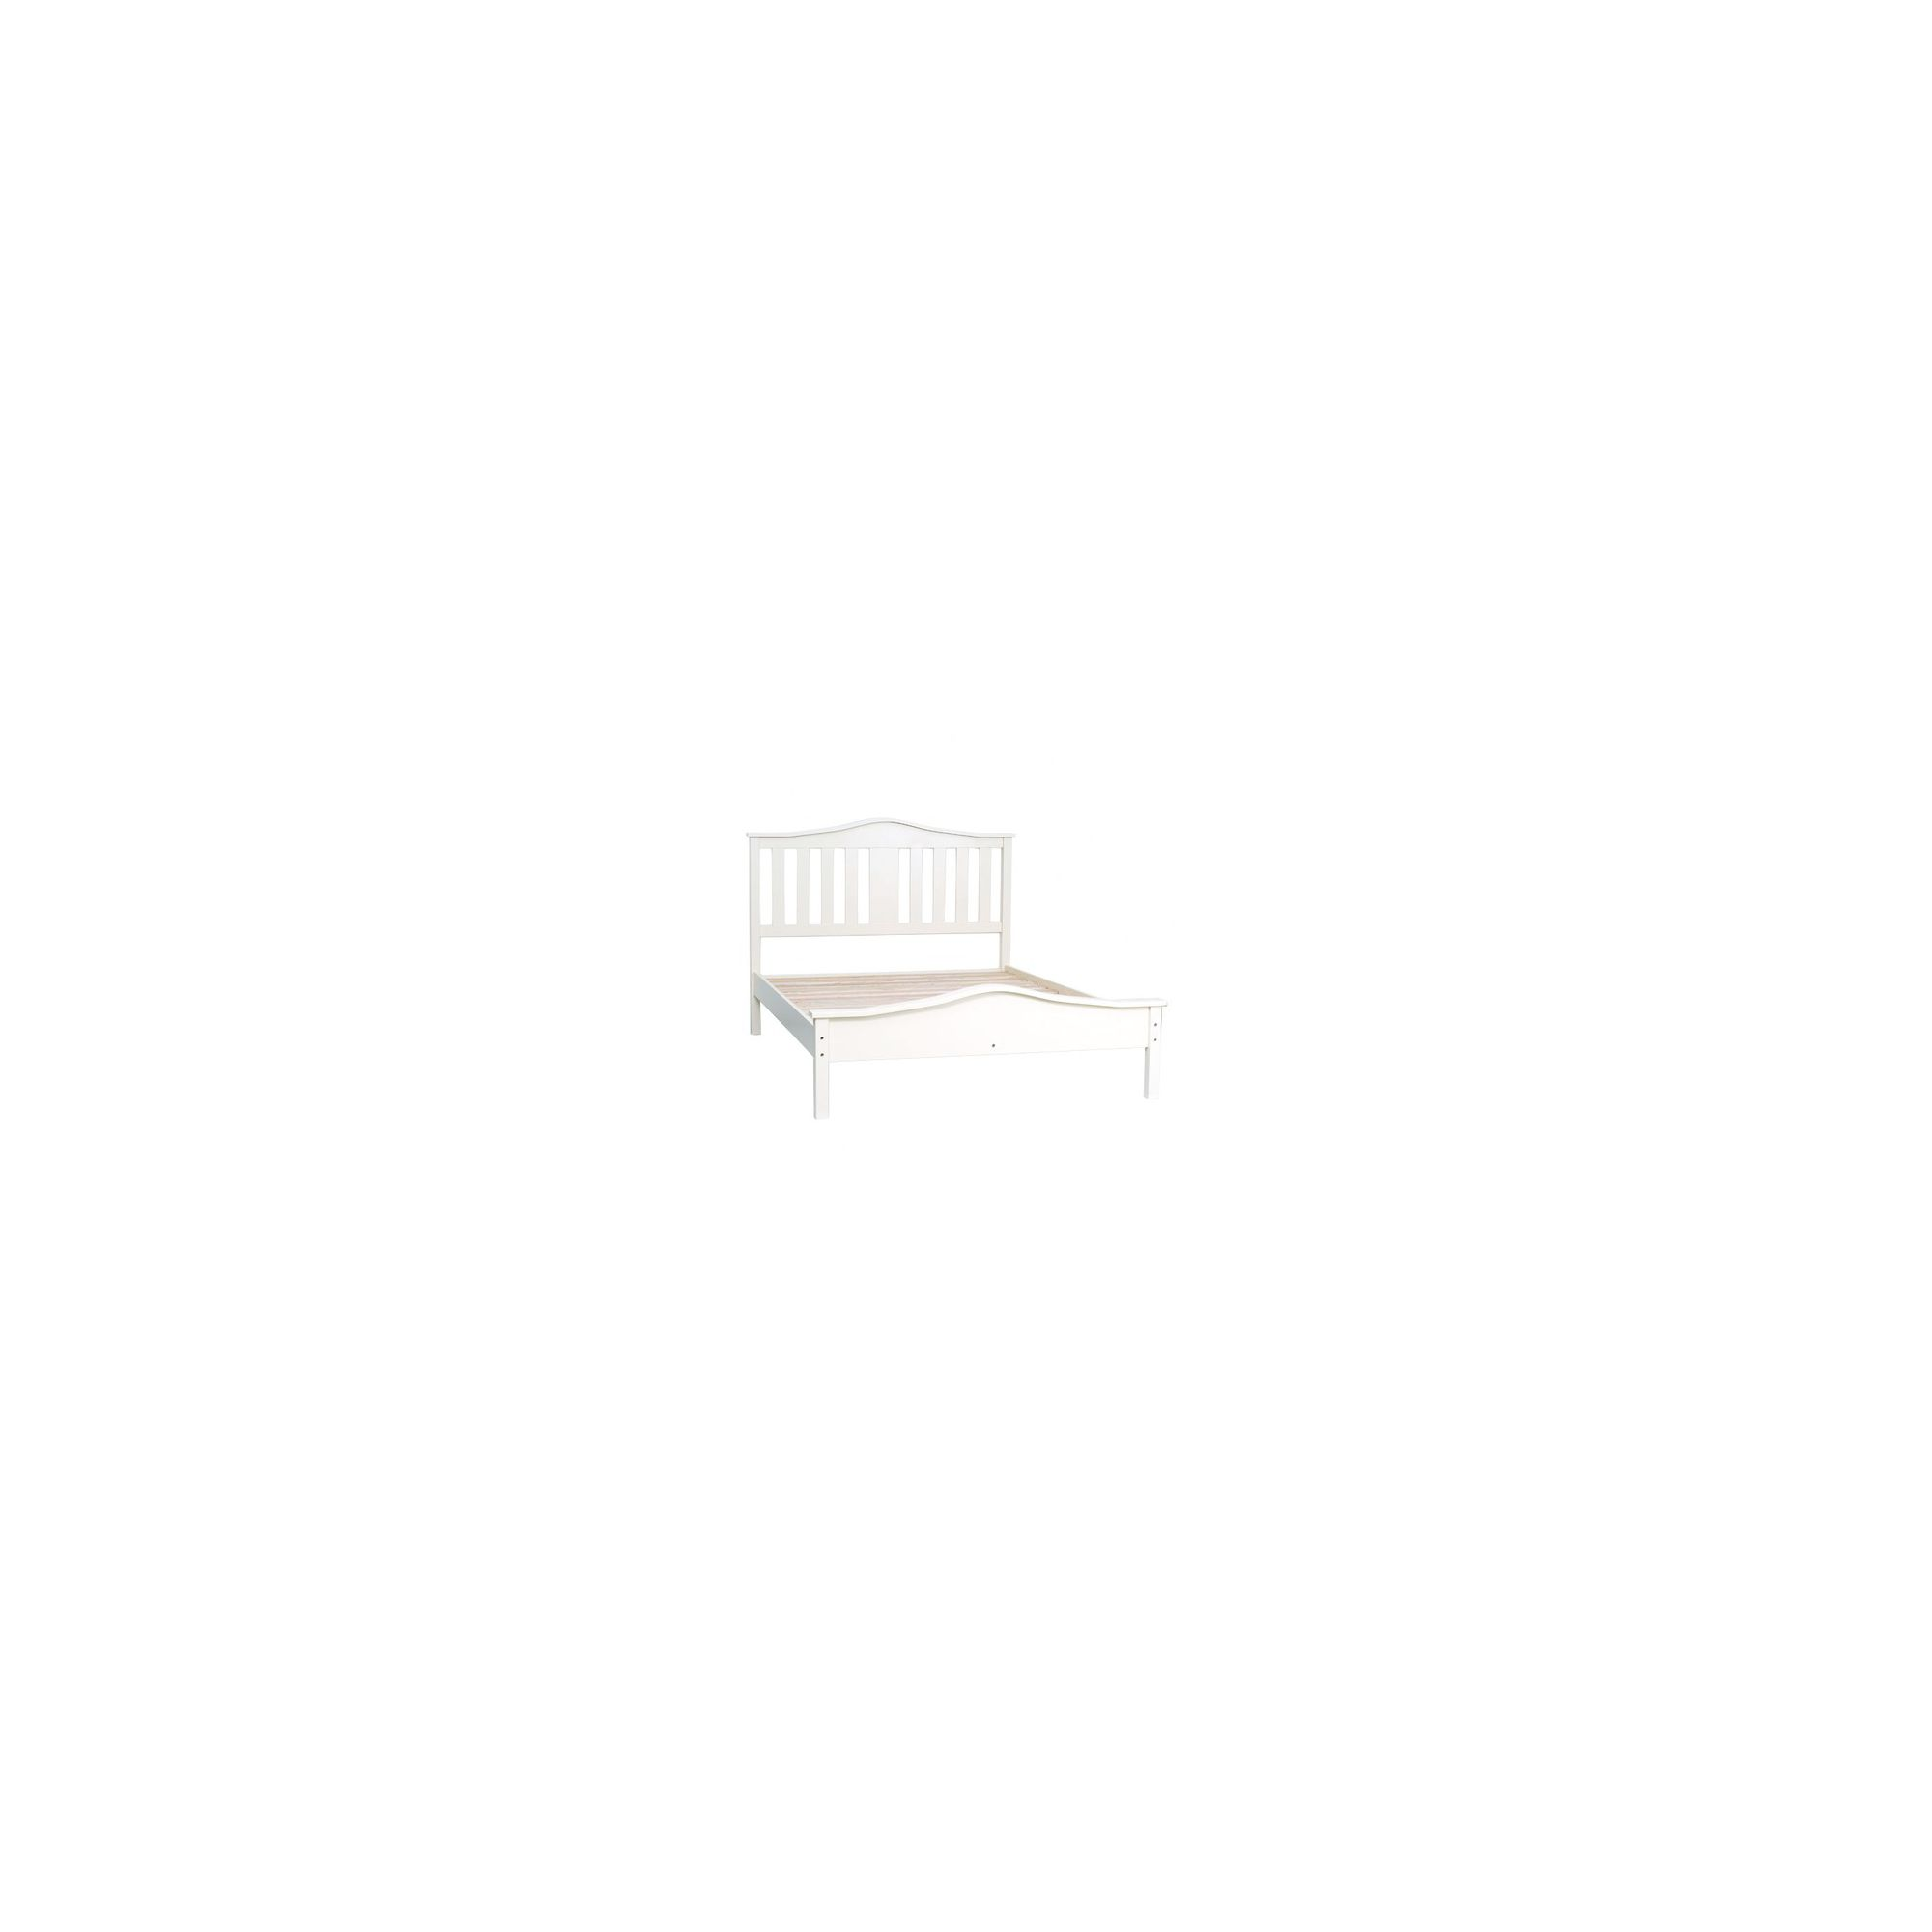 Home Essence Quebec Double Low End Bedstead at Tesco Direct